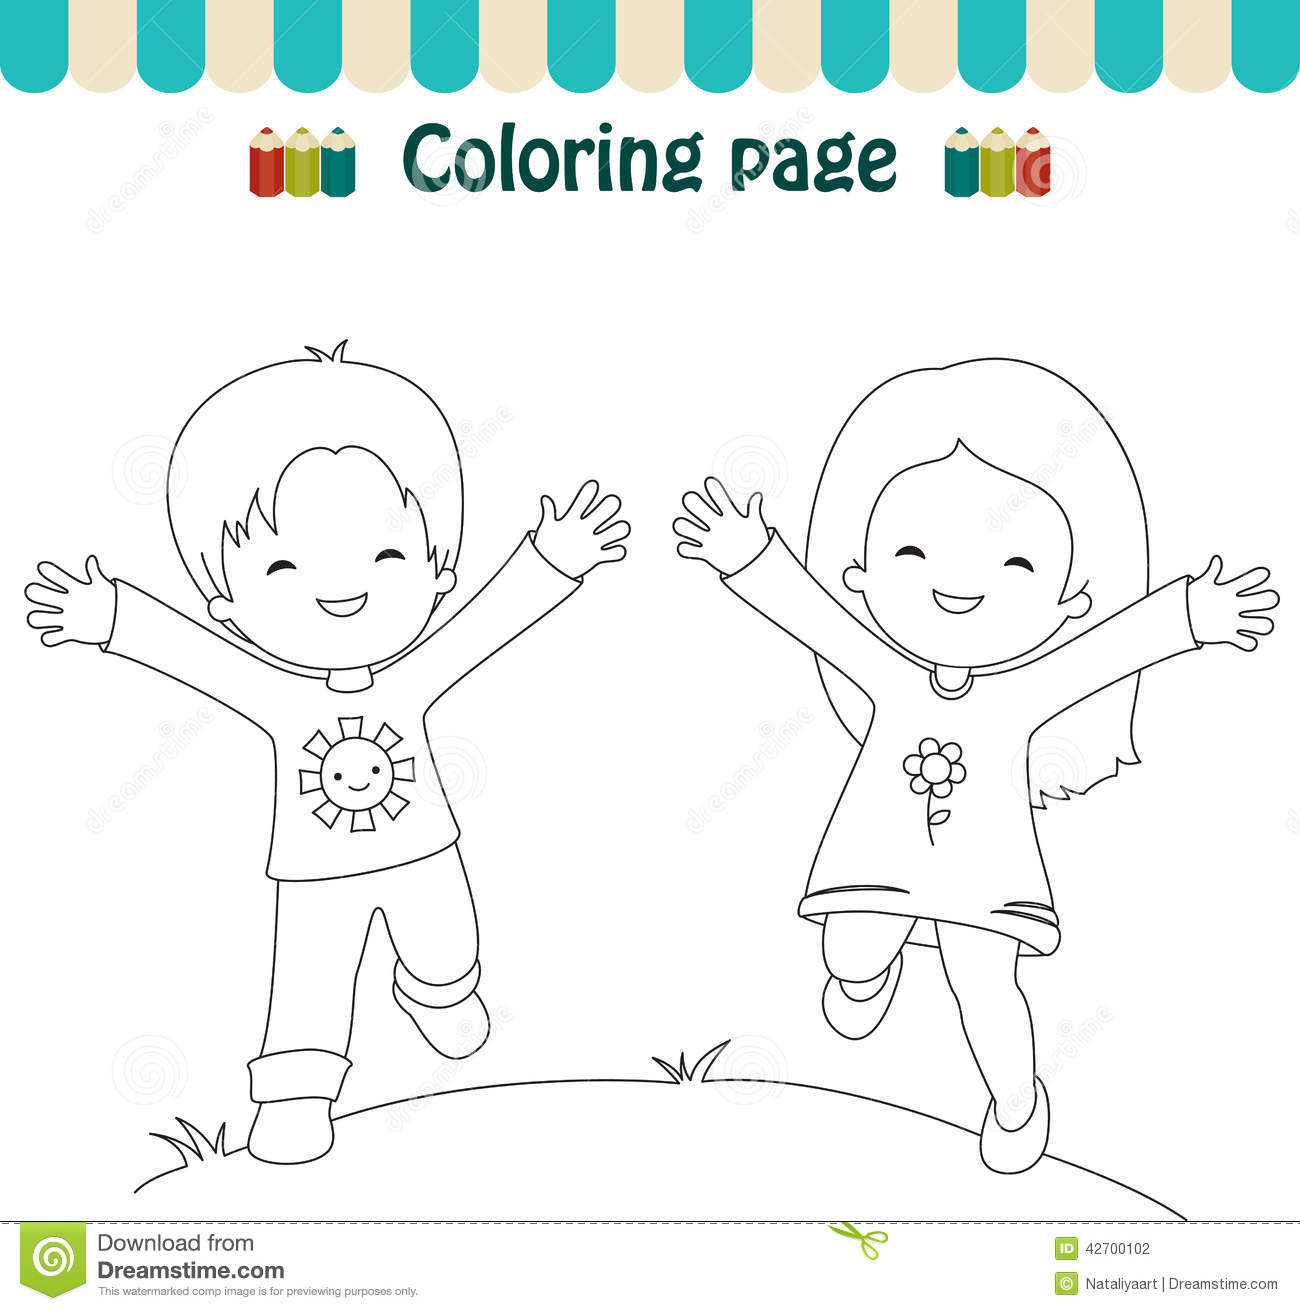 Coloring page happy kids stock vector. Illustration of outside ...